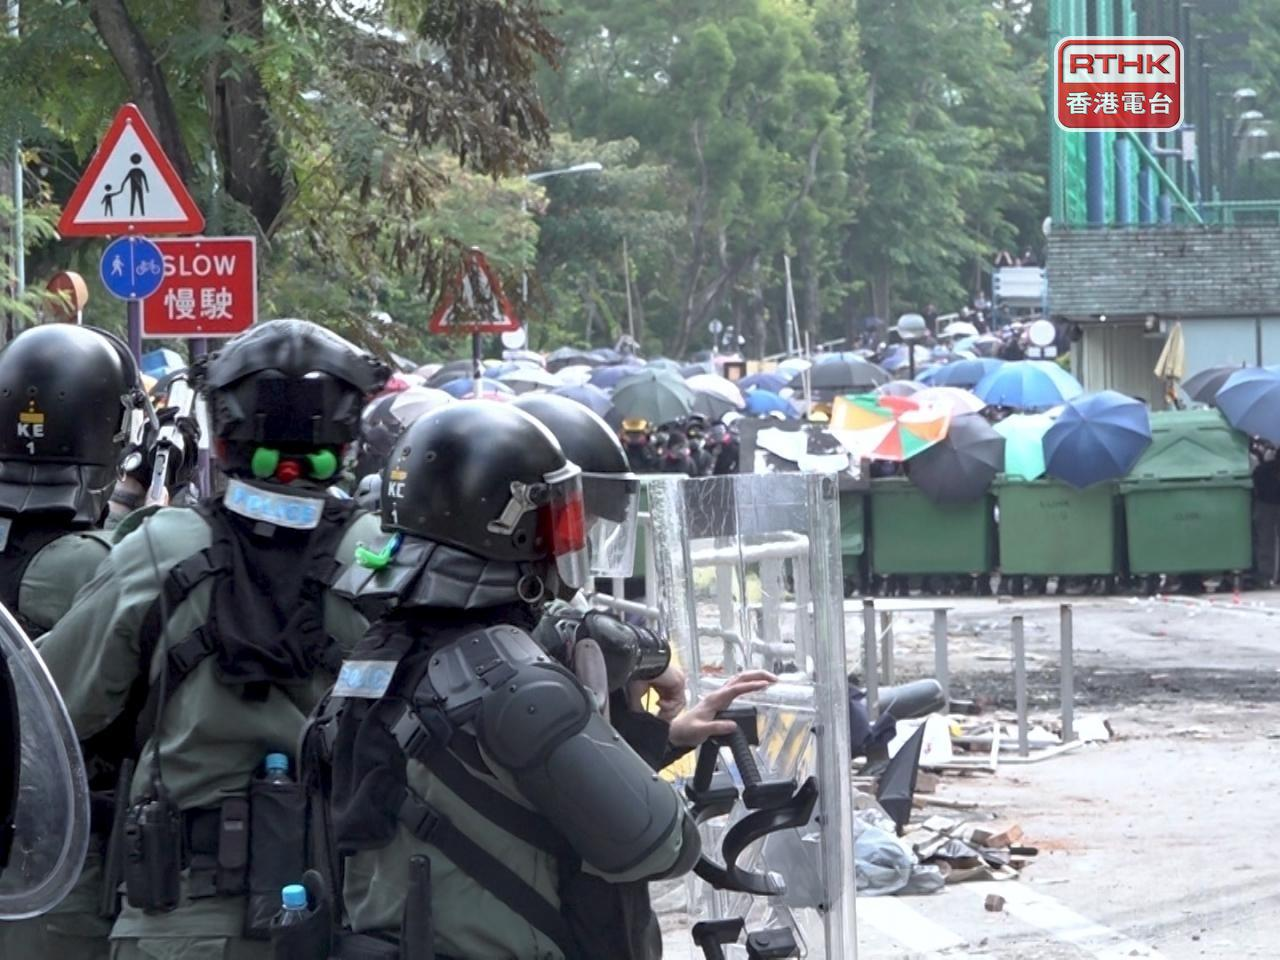 The court heard that around a hundred people clashed with police on a bridge outside the Chinese University campus on November 12, 2019. File photo: RTHK